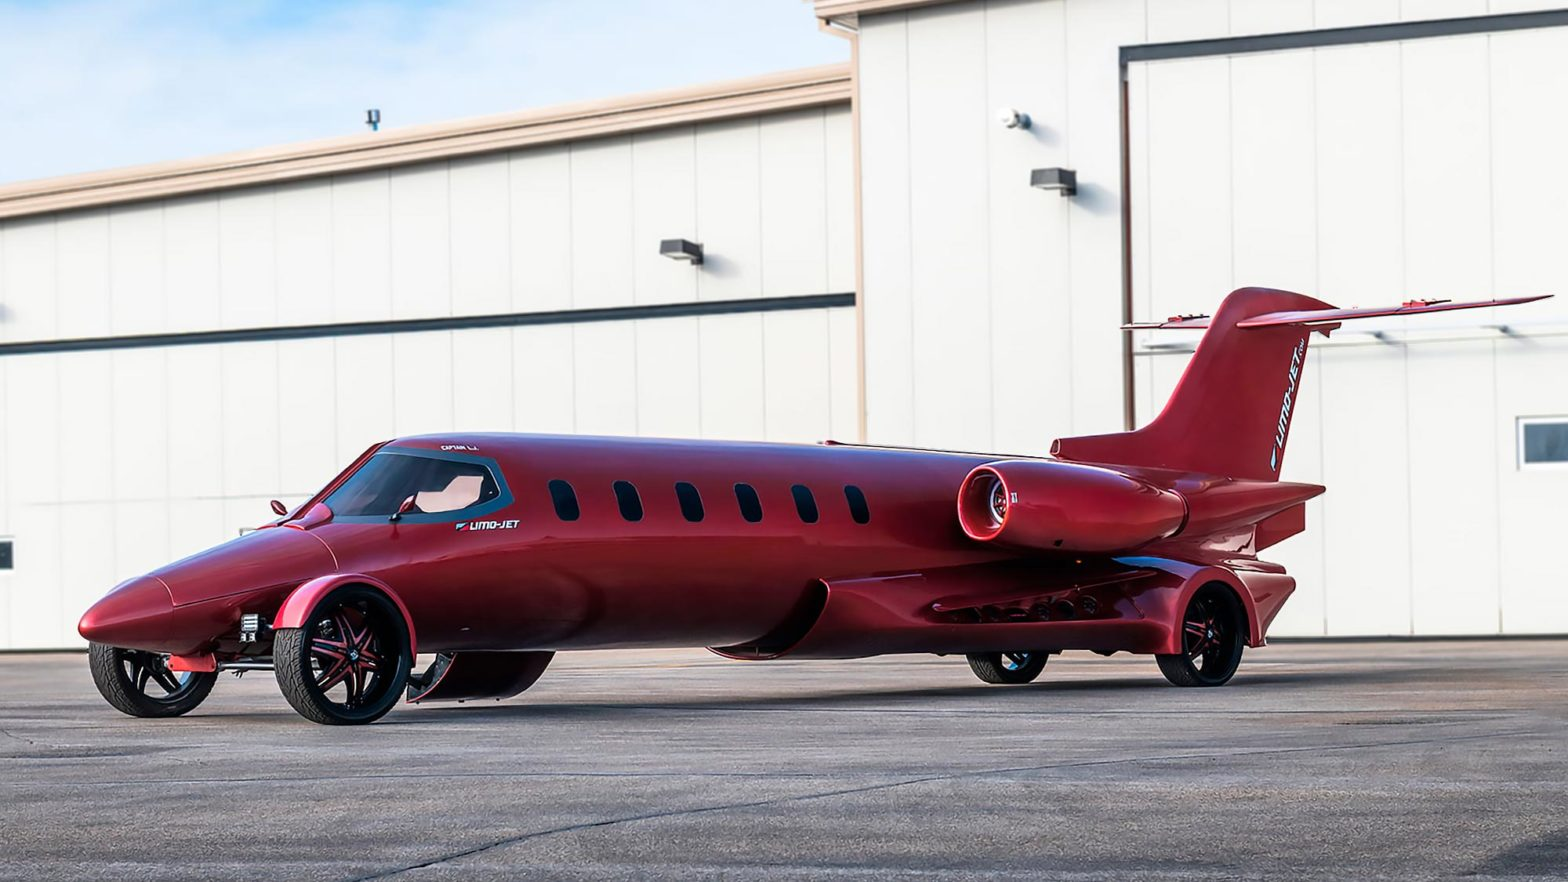 Limo-Jet 42' Lear Jet Learmousine Concept Auction